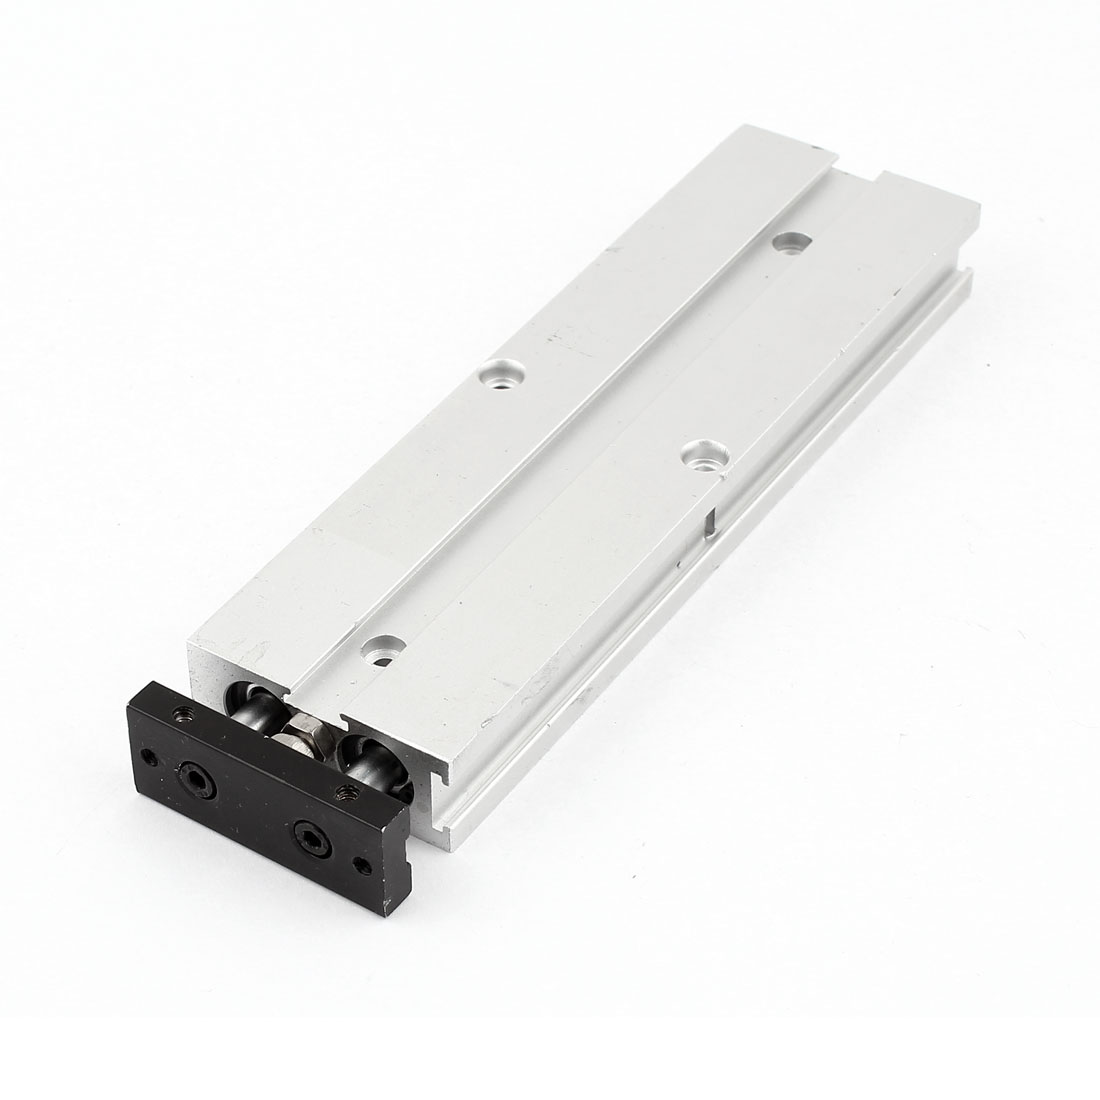 TN10x100 10mm Bore 100mm Stroke Double Rod Aluminum Alloy Pneumatic Air Cylinder